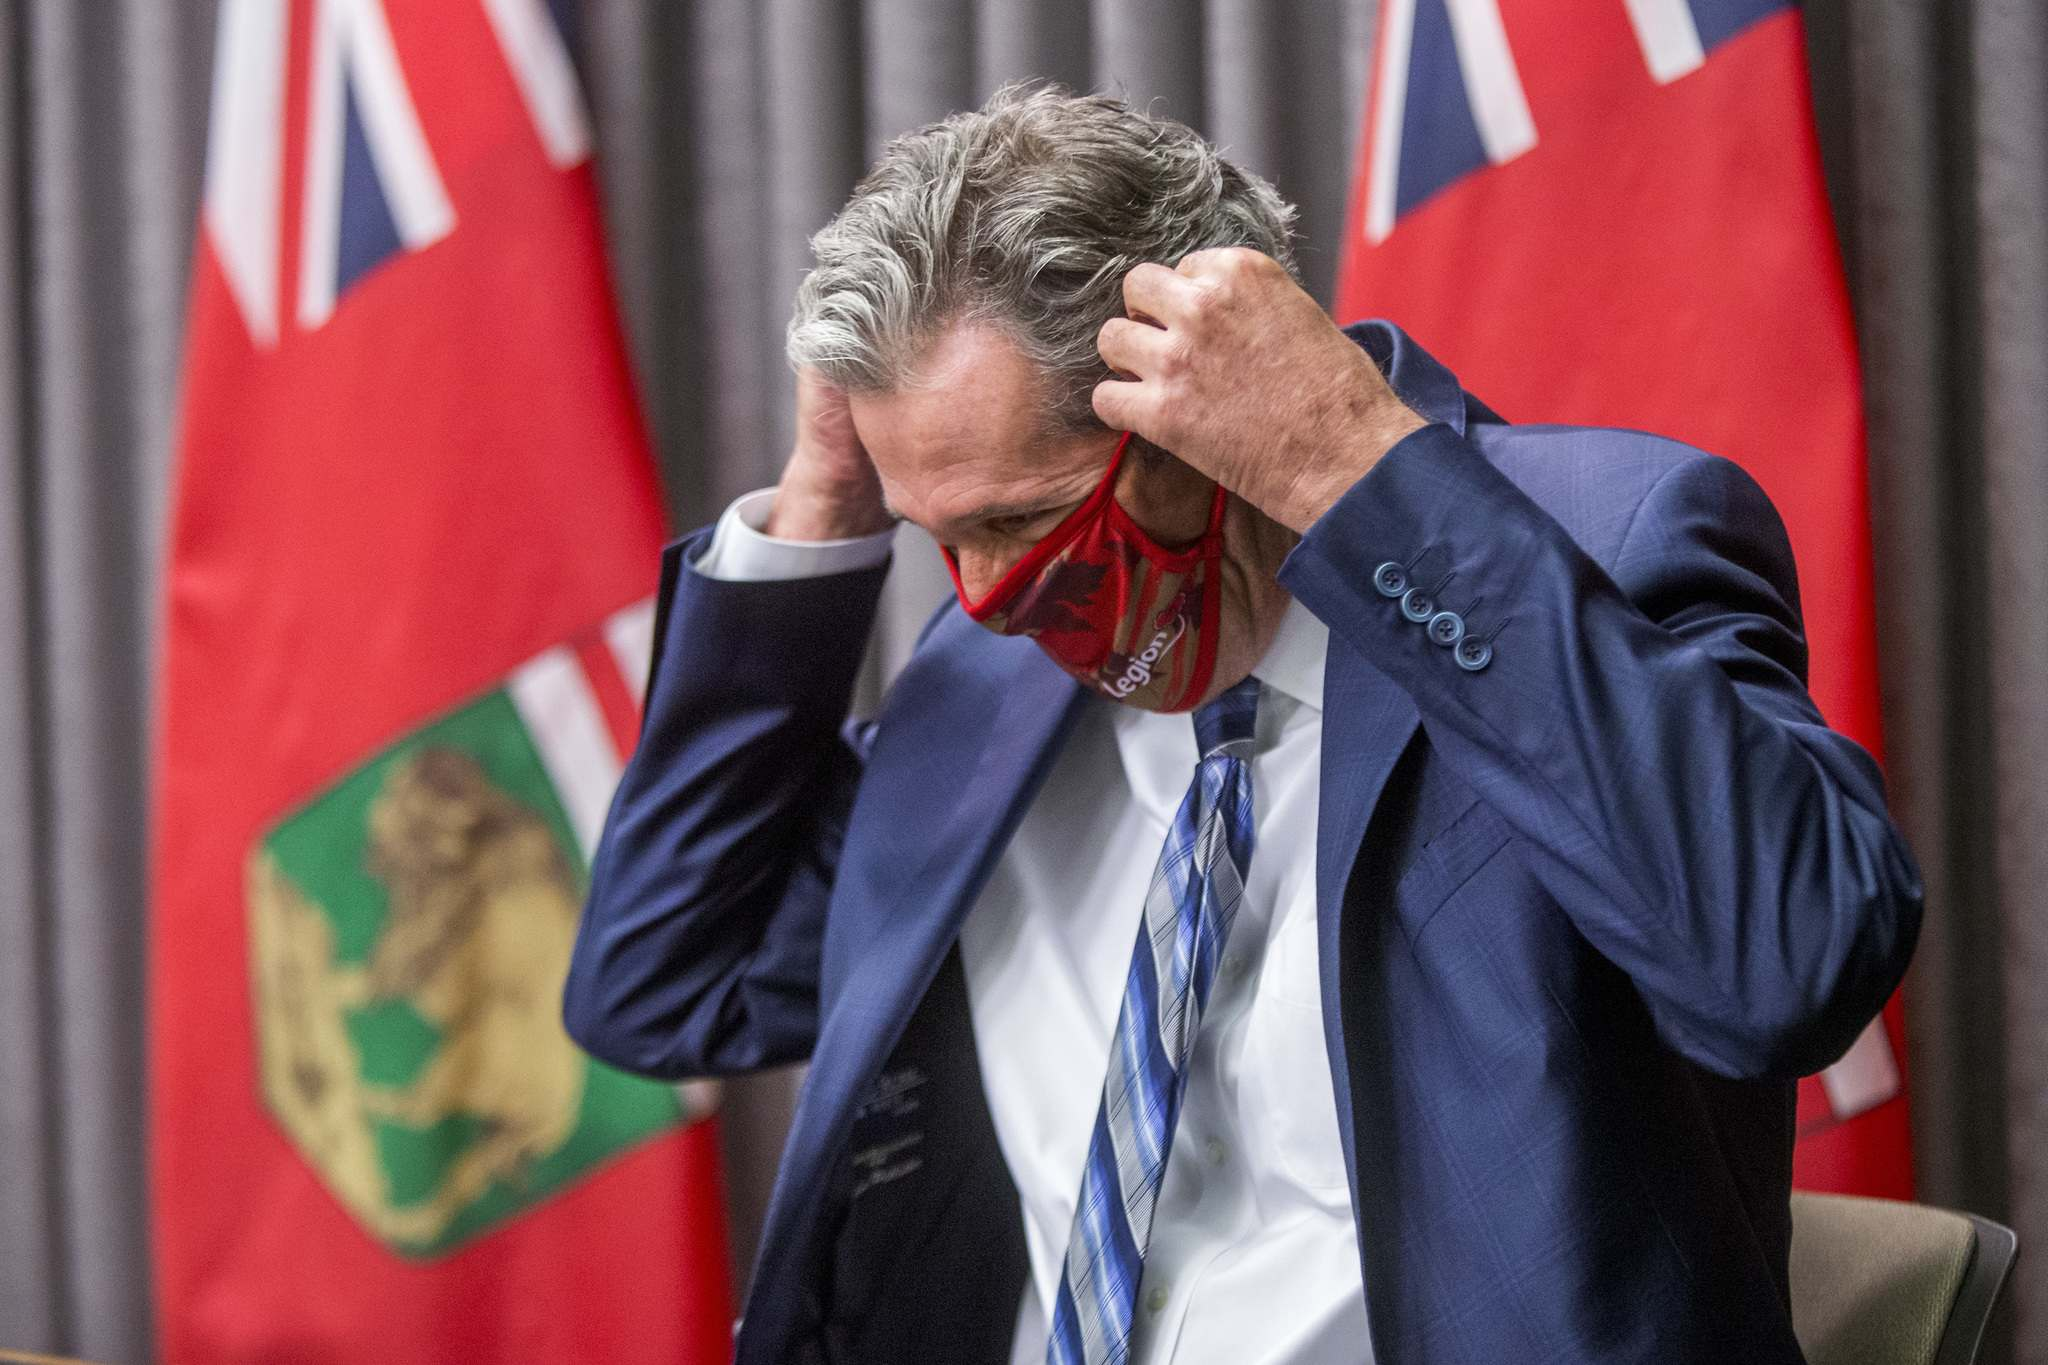 MIKAELA MACKENZIE / WINNIPEG FREE PRESS FILES</p><p>Premier Brian Pallister promised to outline his government's strategy to rebound from the third wave of COVID-19, at a news conference Thursday where he announced a grant program to increase vaccination rates.</p></p>